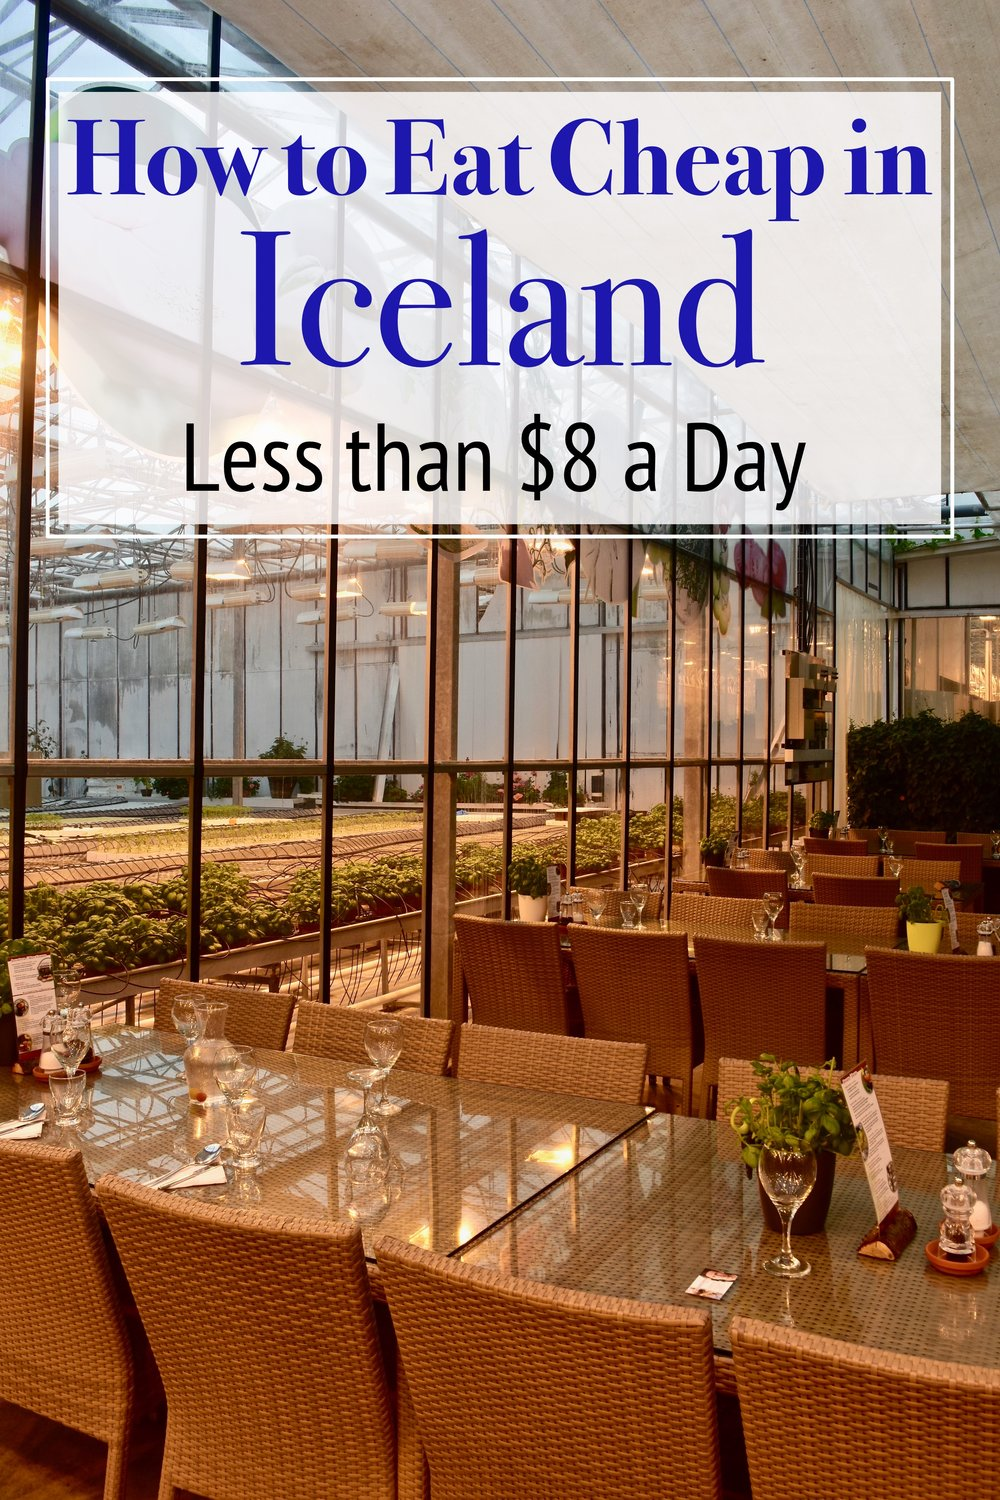 How to Eat Cheap in Iceland.  We spent less than 8 Dollars per day on food.  Iceland is an extremely expensive country but there are ways to bring down costs. #Iceland #Expensive #budget #cheap #food #europe #travel